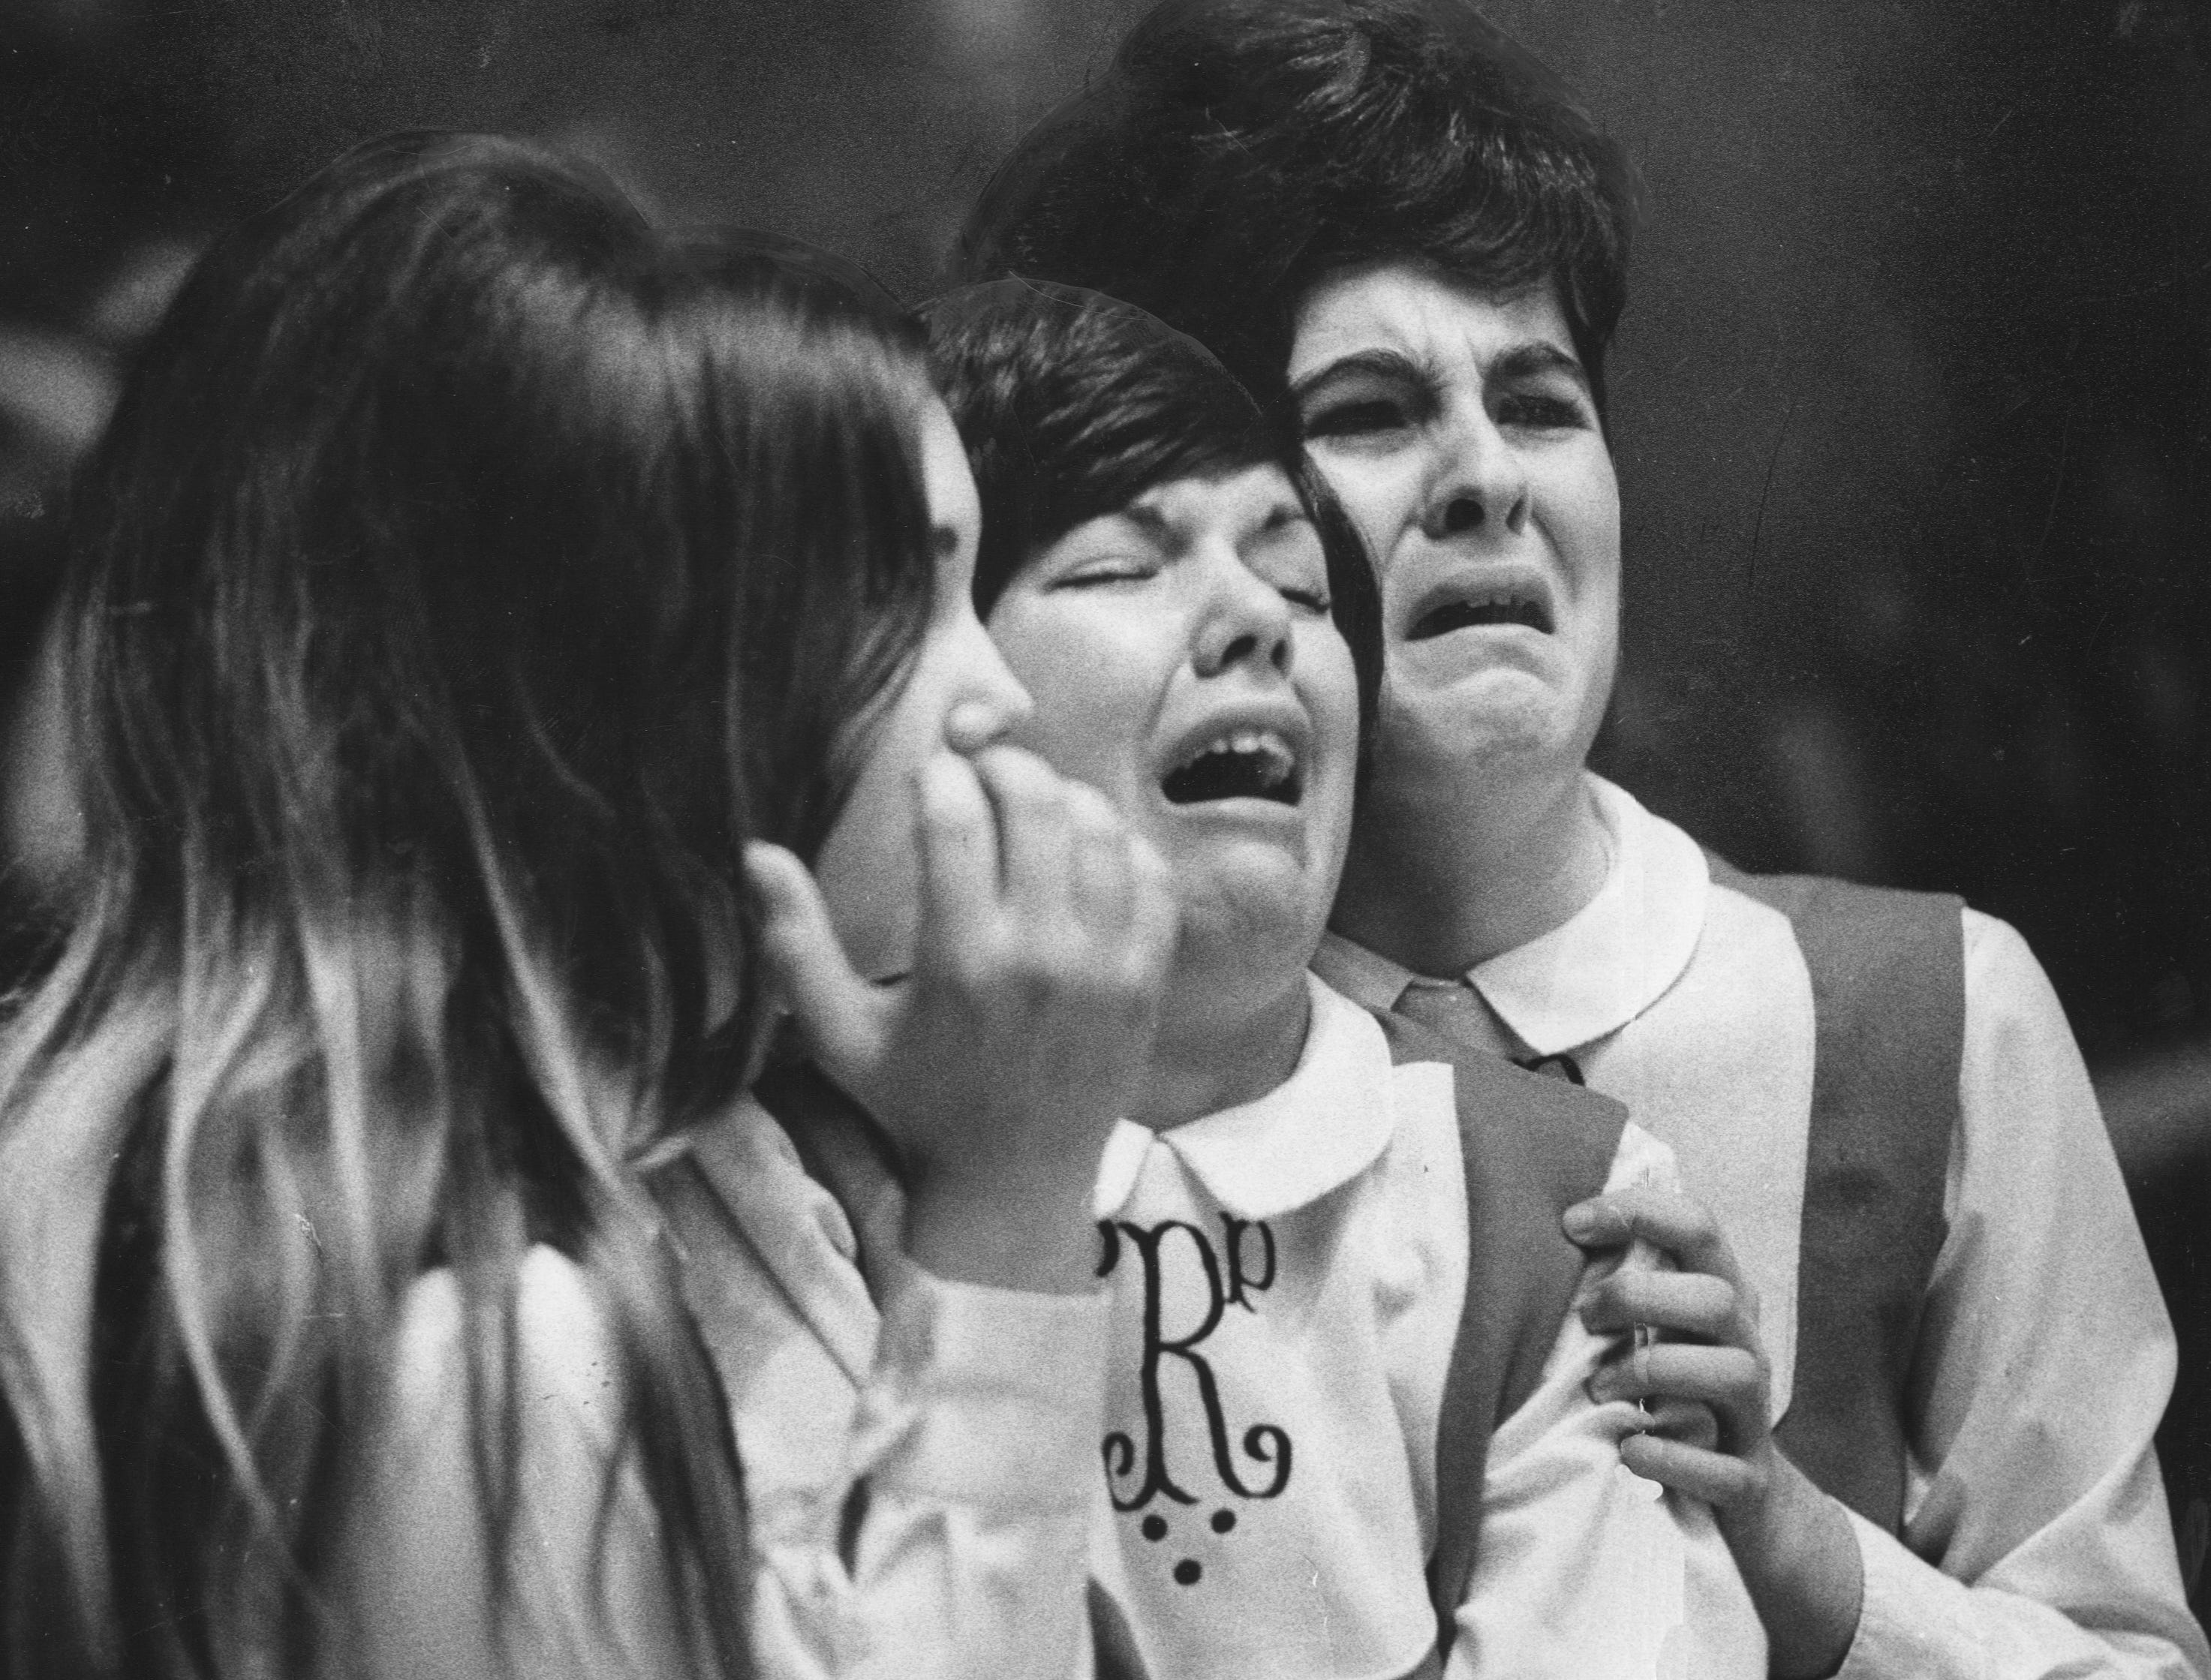 Cheerleaders at Pleasure Ridge Park High School break into tears as the team loses 58-52 to Male in the semifinals of the state basketball tournament. Mar. 22, 1970